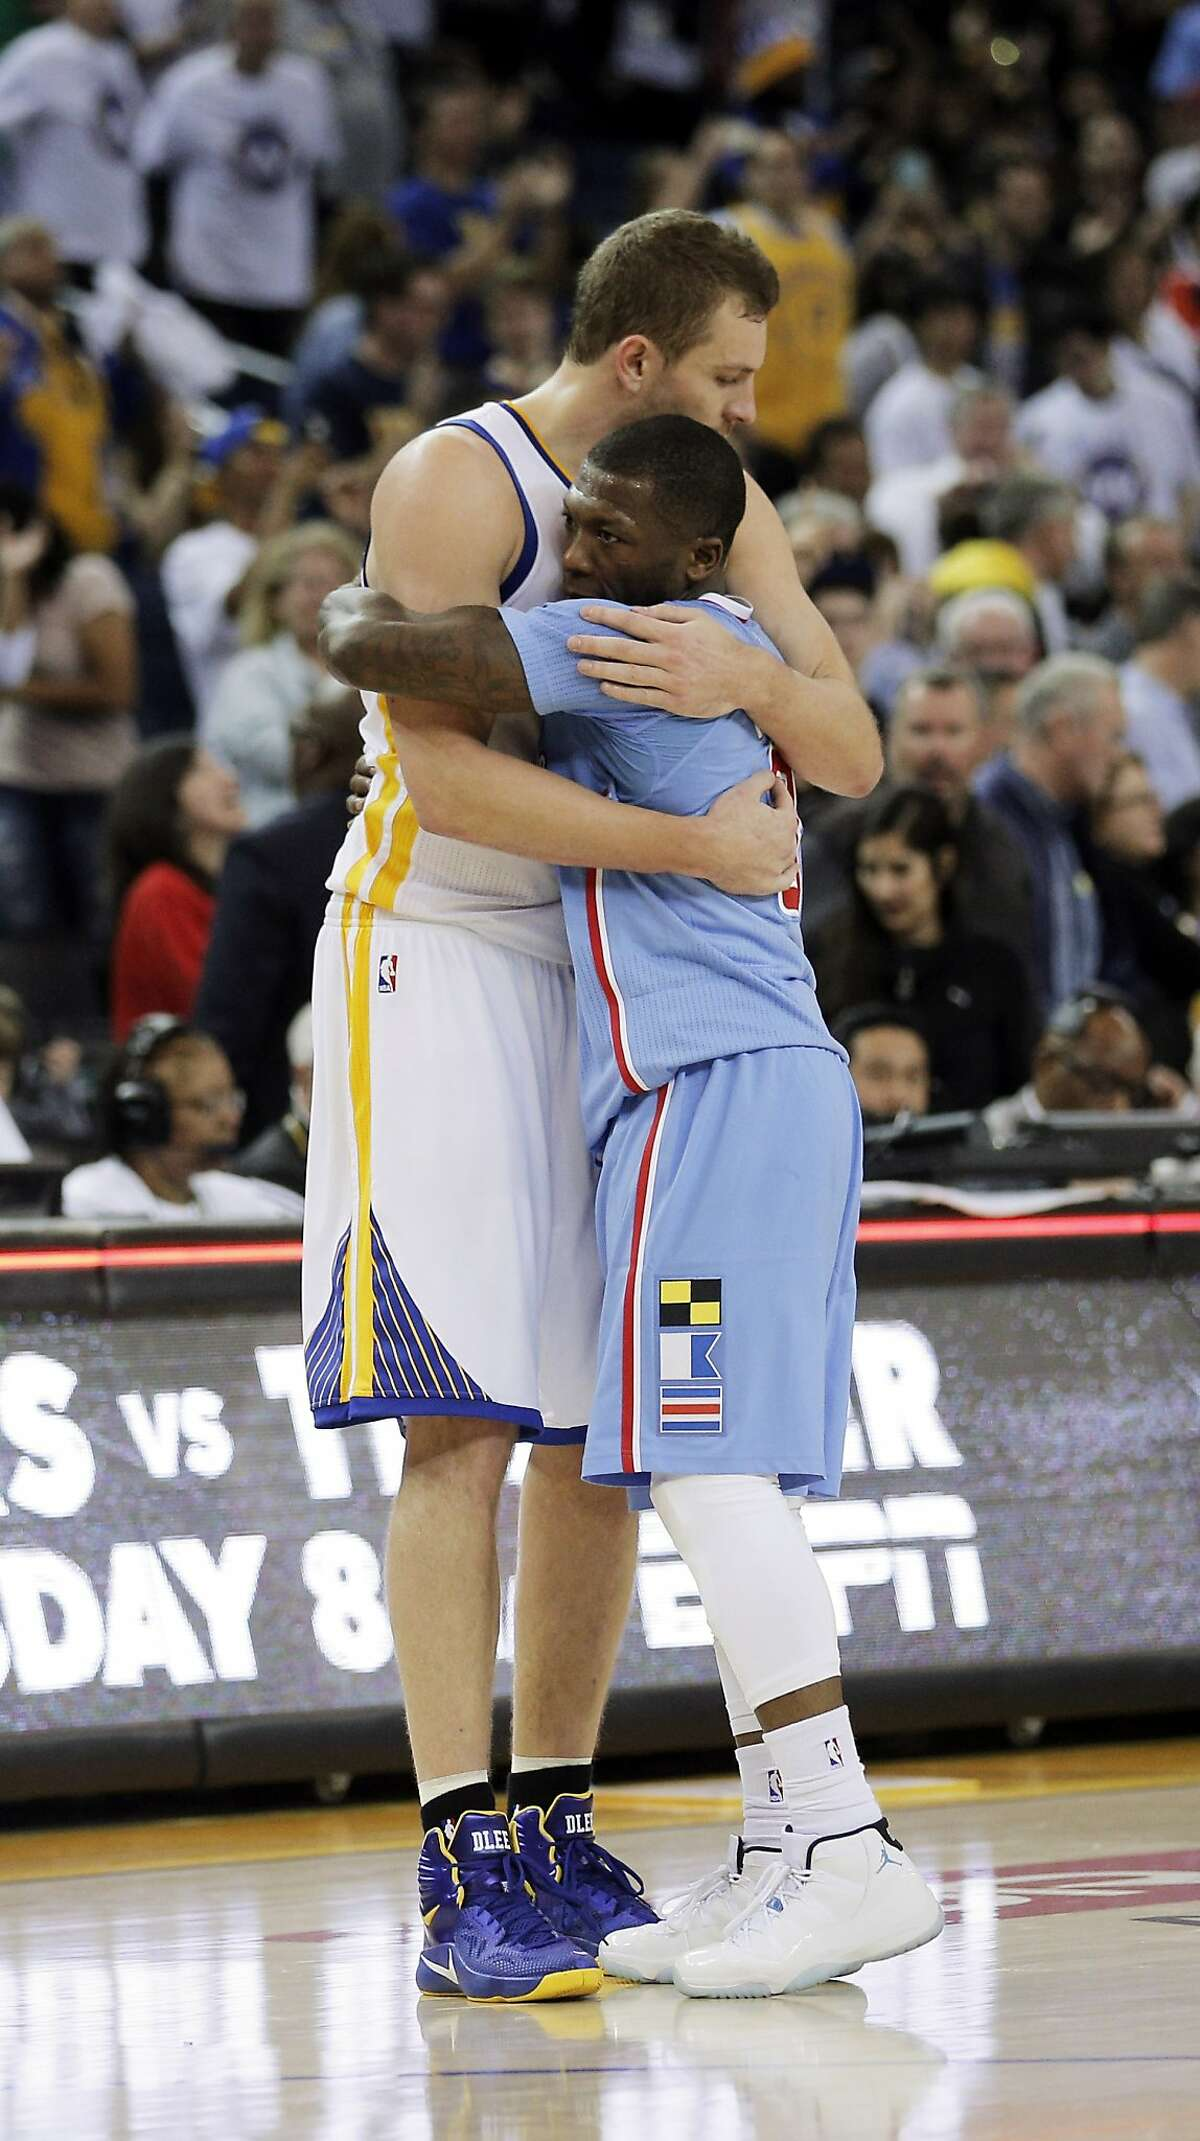 David Lee (10) hugs Nate Robinson (8) after the Warriors defeated the Clippers 106-98. The Golden State Warriors played the Los Angeles Clippers at Oracle Arena in Oakland, Calif., on Sunday, March 8, 2015.